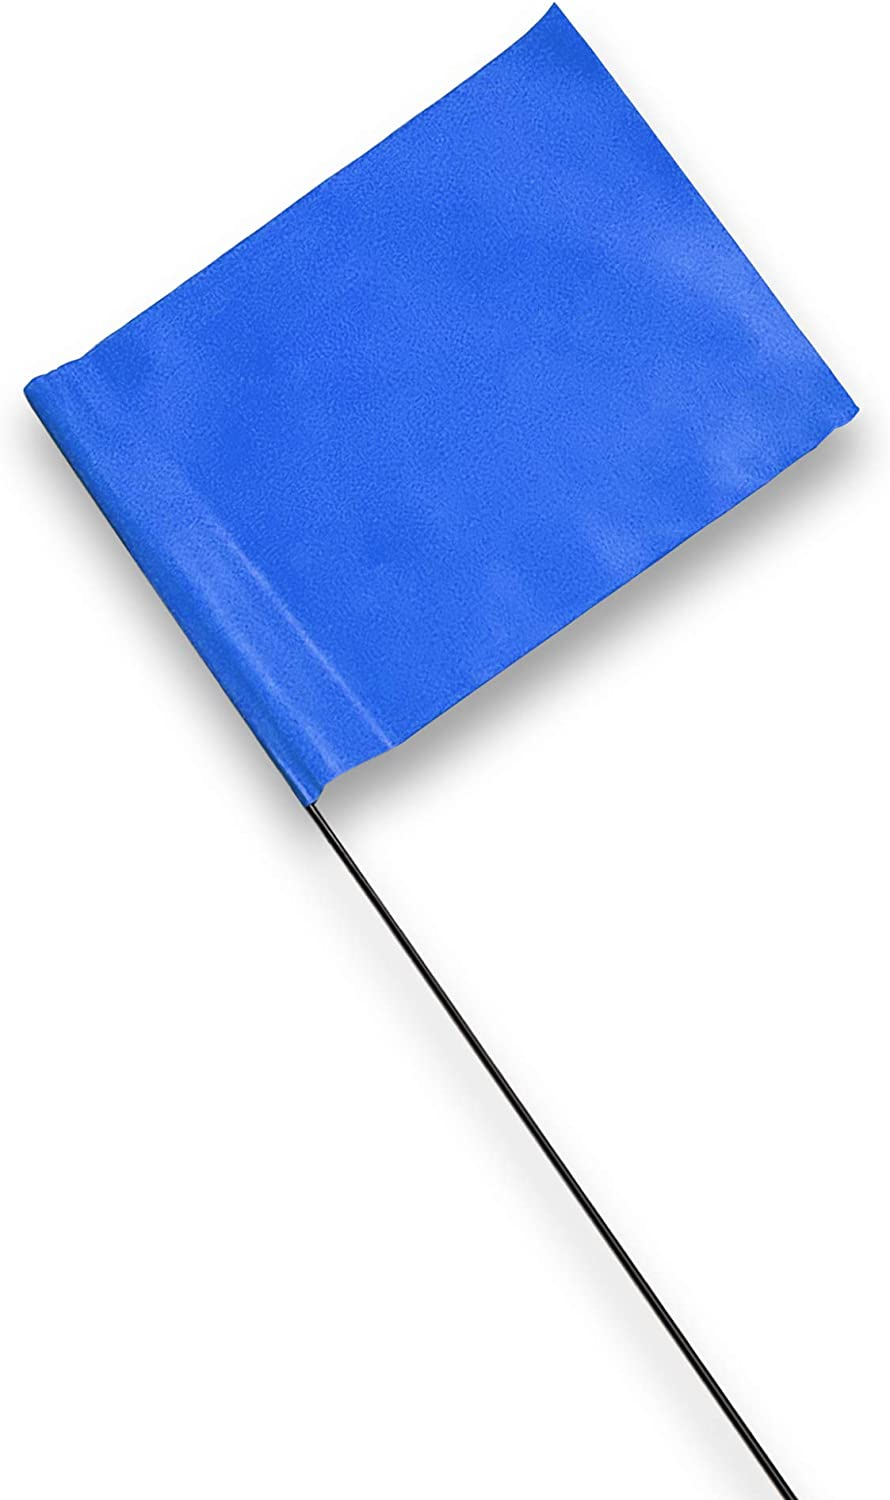 Marking Flags - 4 x 5-Inch Flag on 15-Inch Steel Wire - Fluorescent Blue, 100 Pack - Marker Flags for Irrigation, Sprinkler Flags, Lawn Flags, Yard Flags, Garden Flags, Dog Training, Invisible Fence